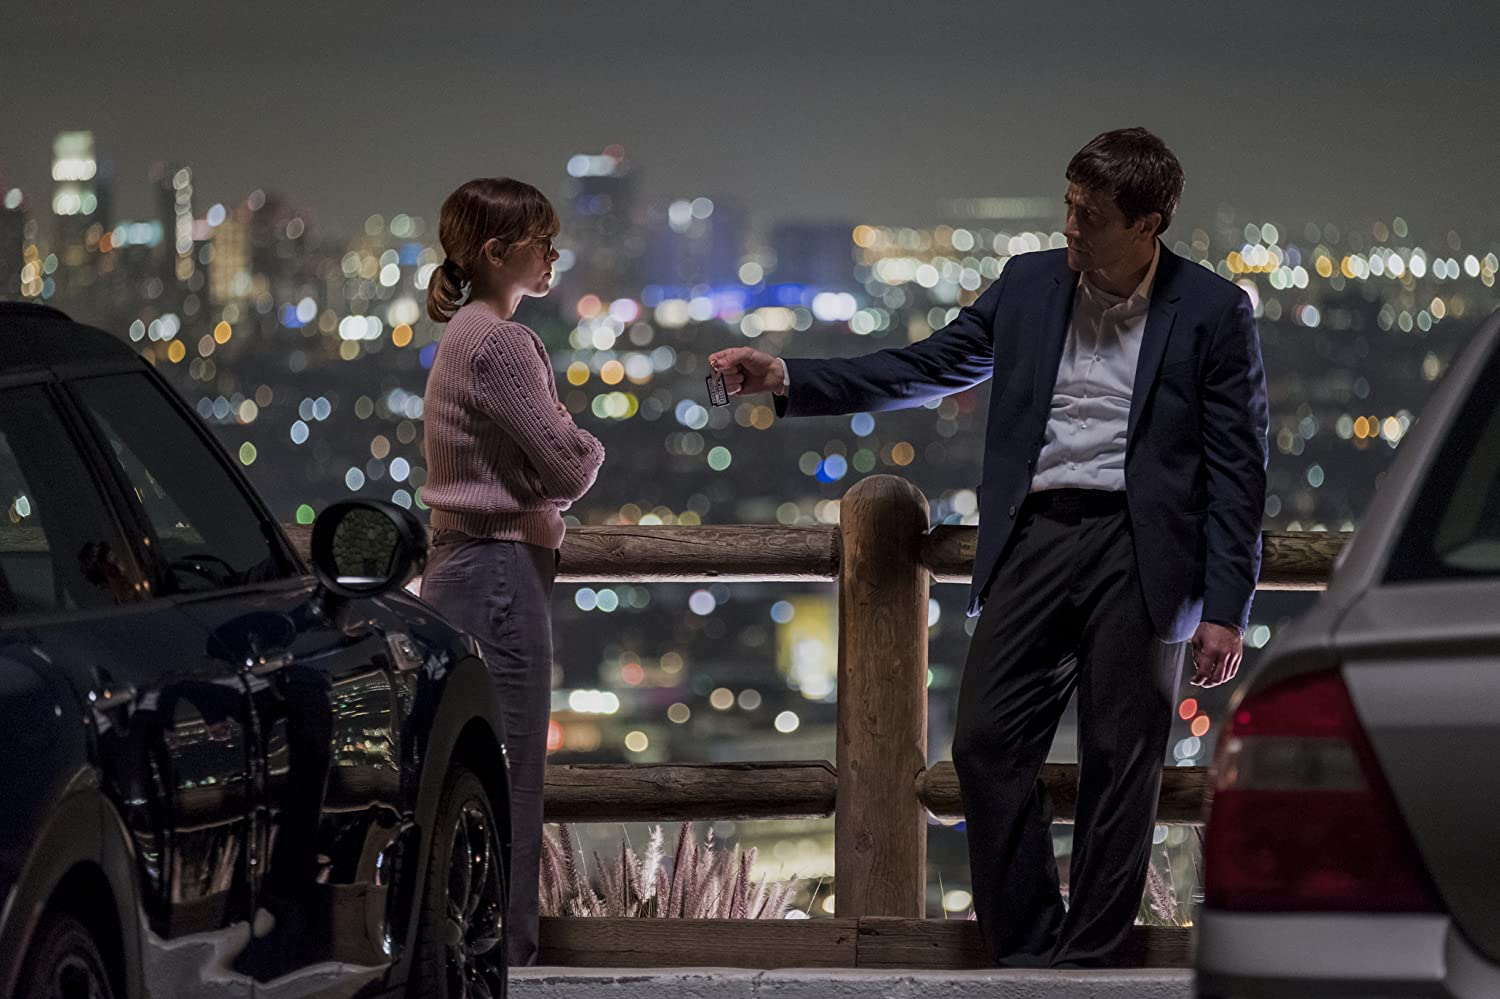 Jake Gyllenhaal and Natalia Dyer in Velvet Buzzsaw (2019)